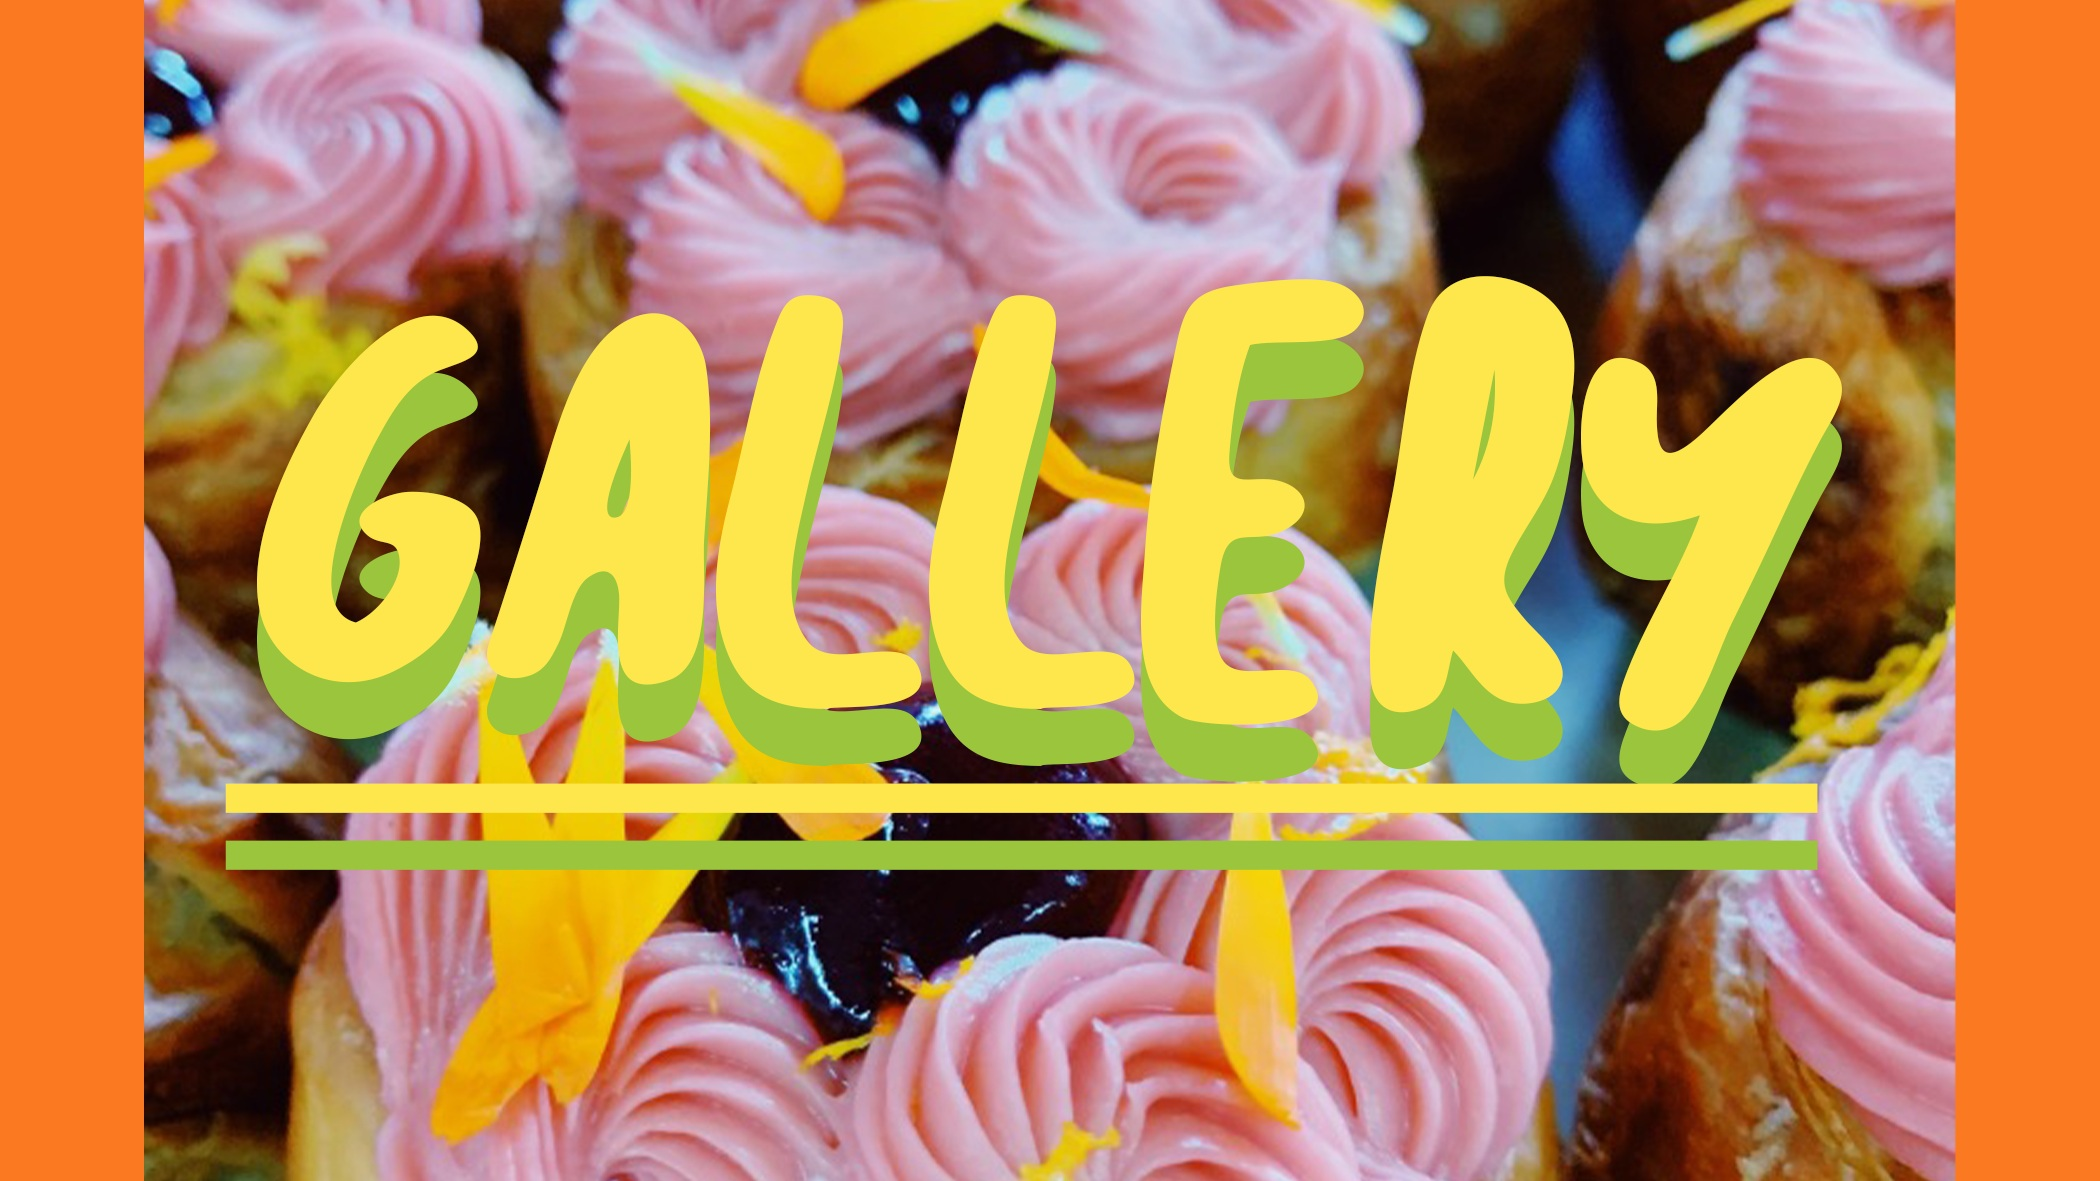 Look @ pics - Includes baked goods, quotes from the blog, graphic design, and more.